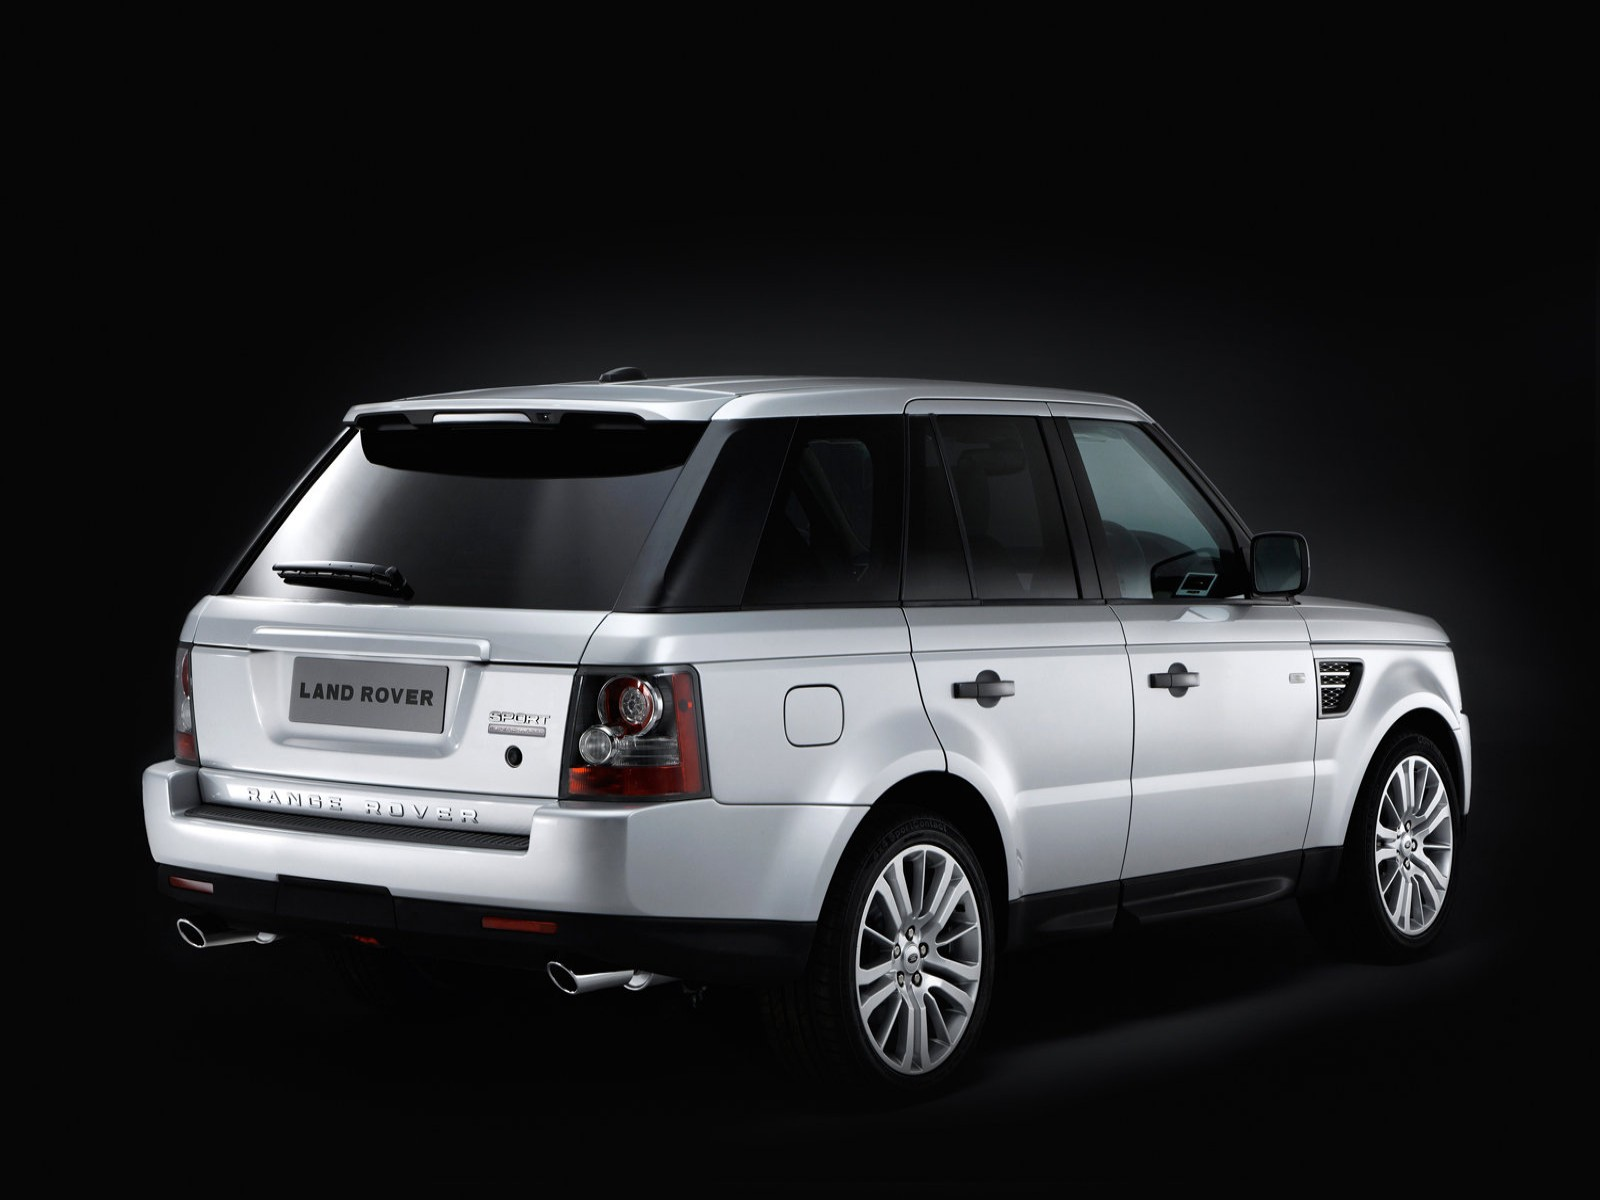 land rover range rover sport tdv8 technical details. Black Bedroom Furniture Sets. Home Design Ideas